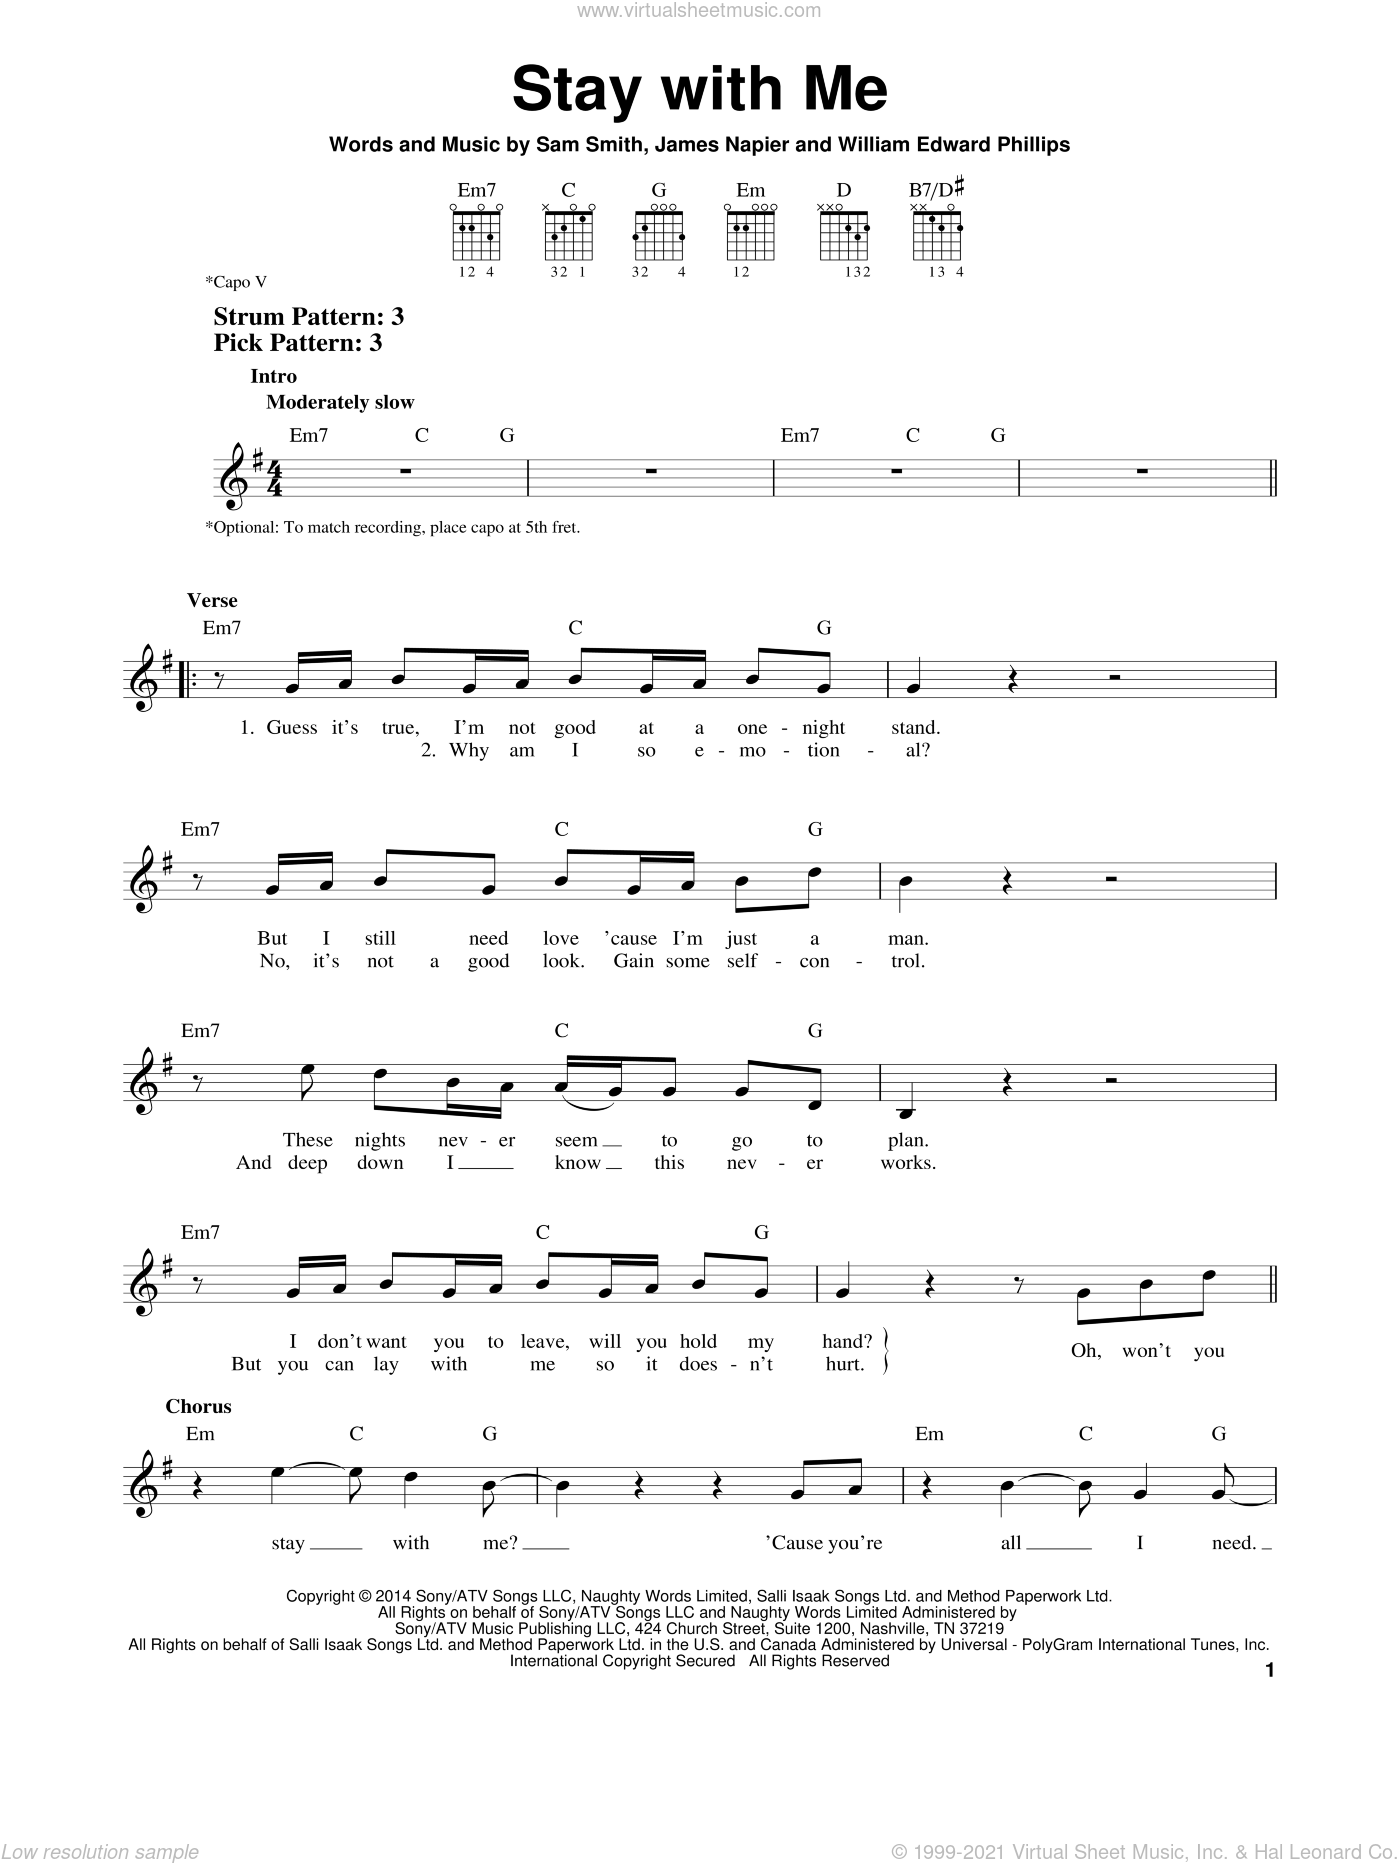 Stay With Me sheet music for guitar solo (chords) by William Edward Phillips